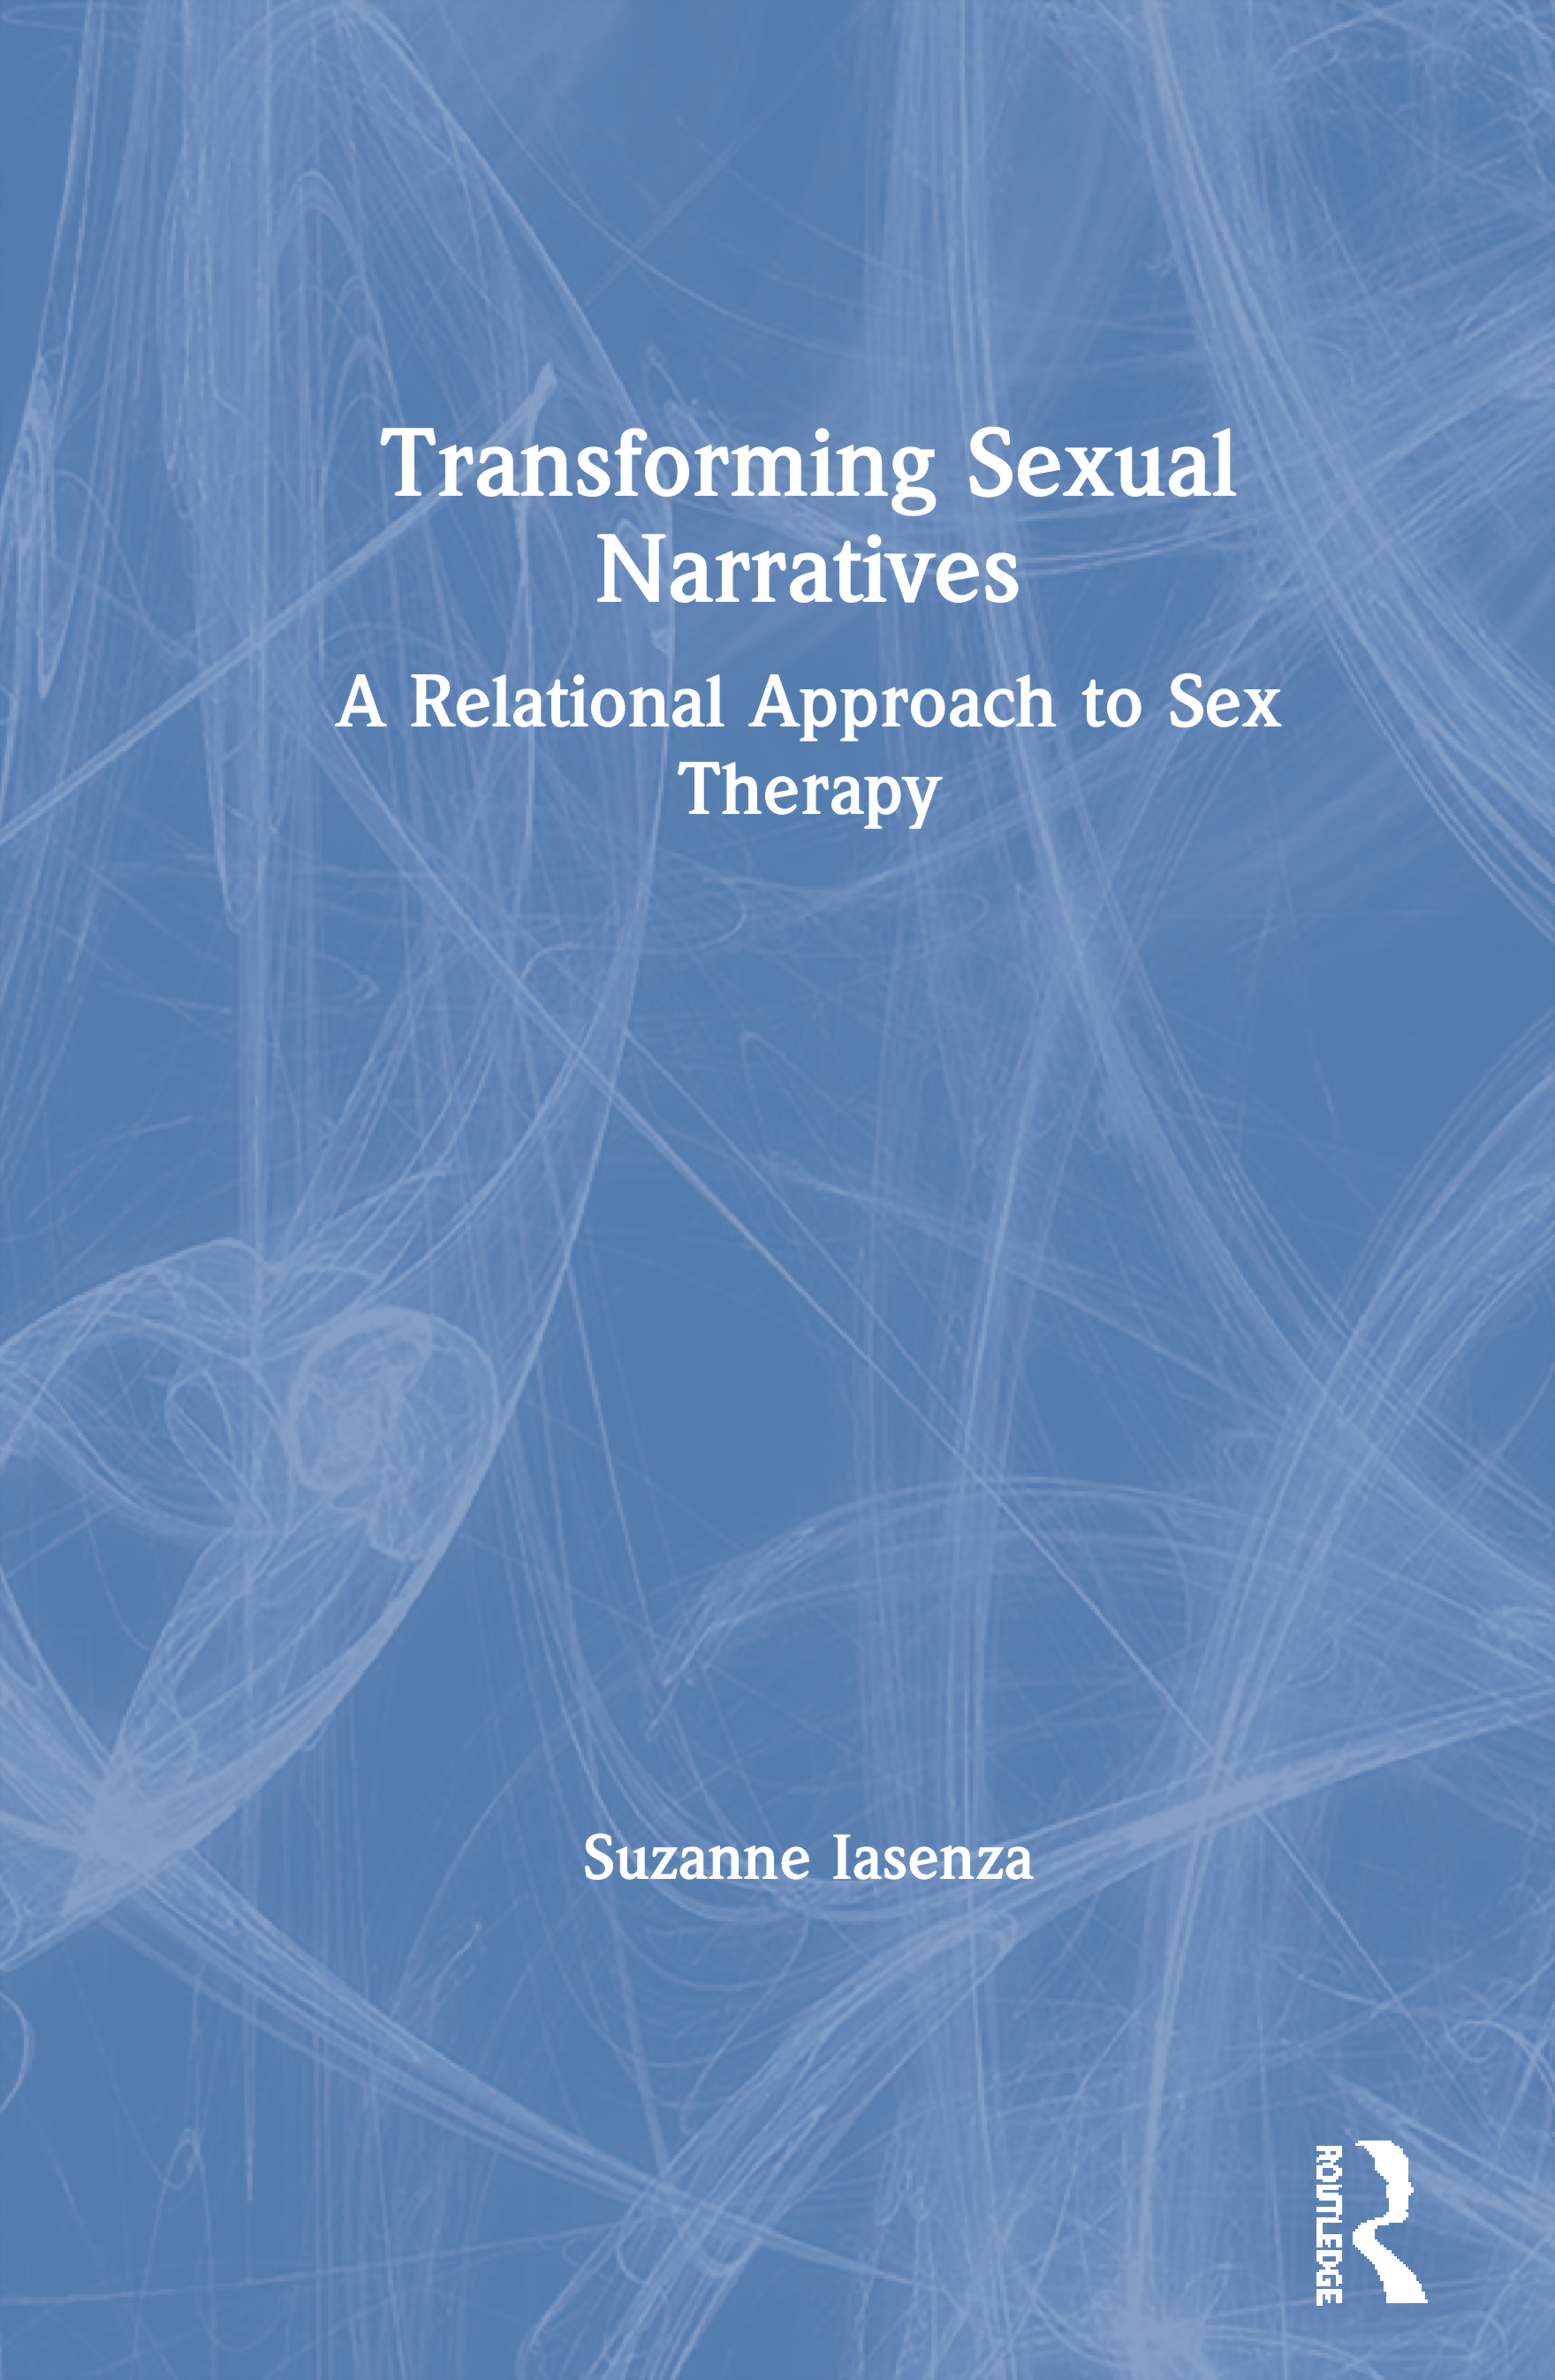 Transforming Sexual Narratives: A Relational Approach to Sex Therapy book cover